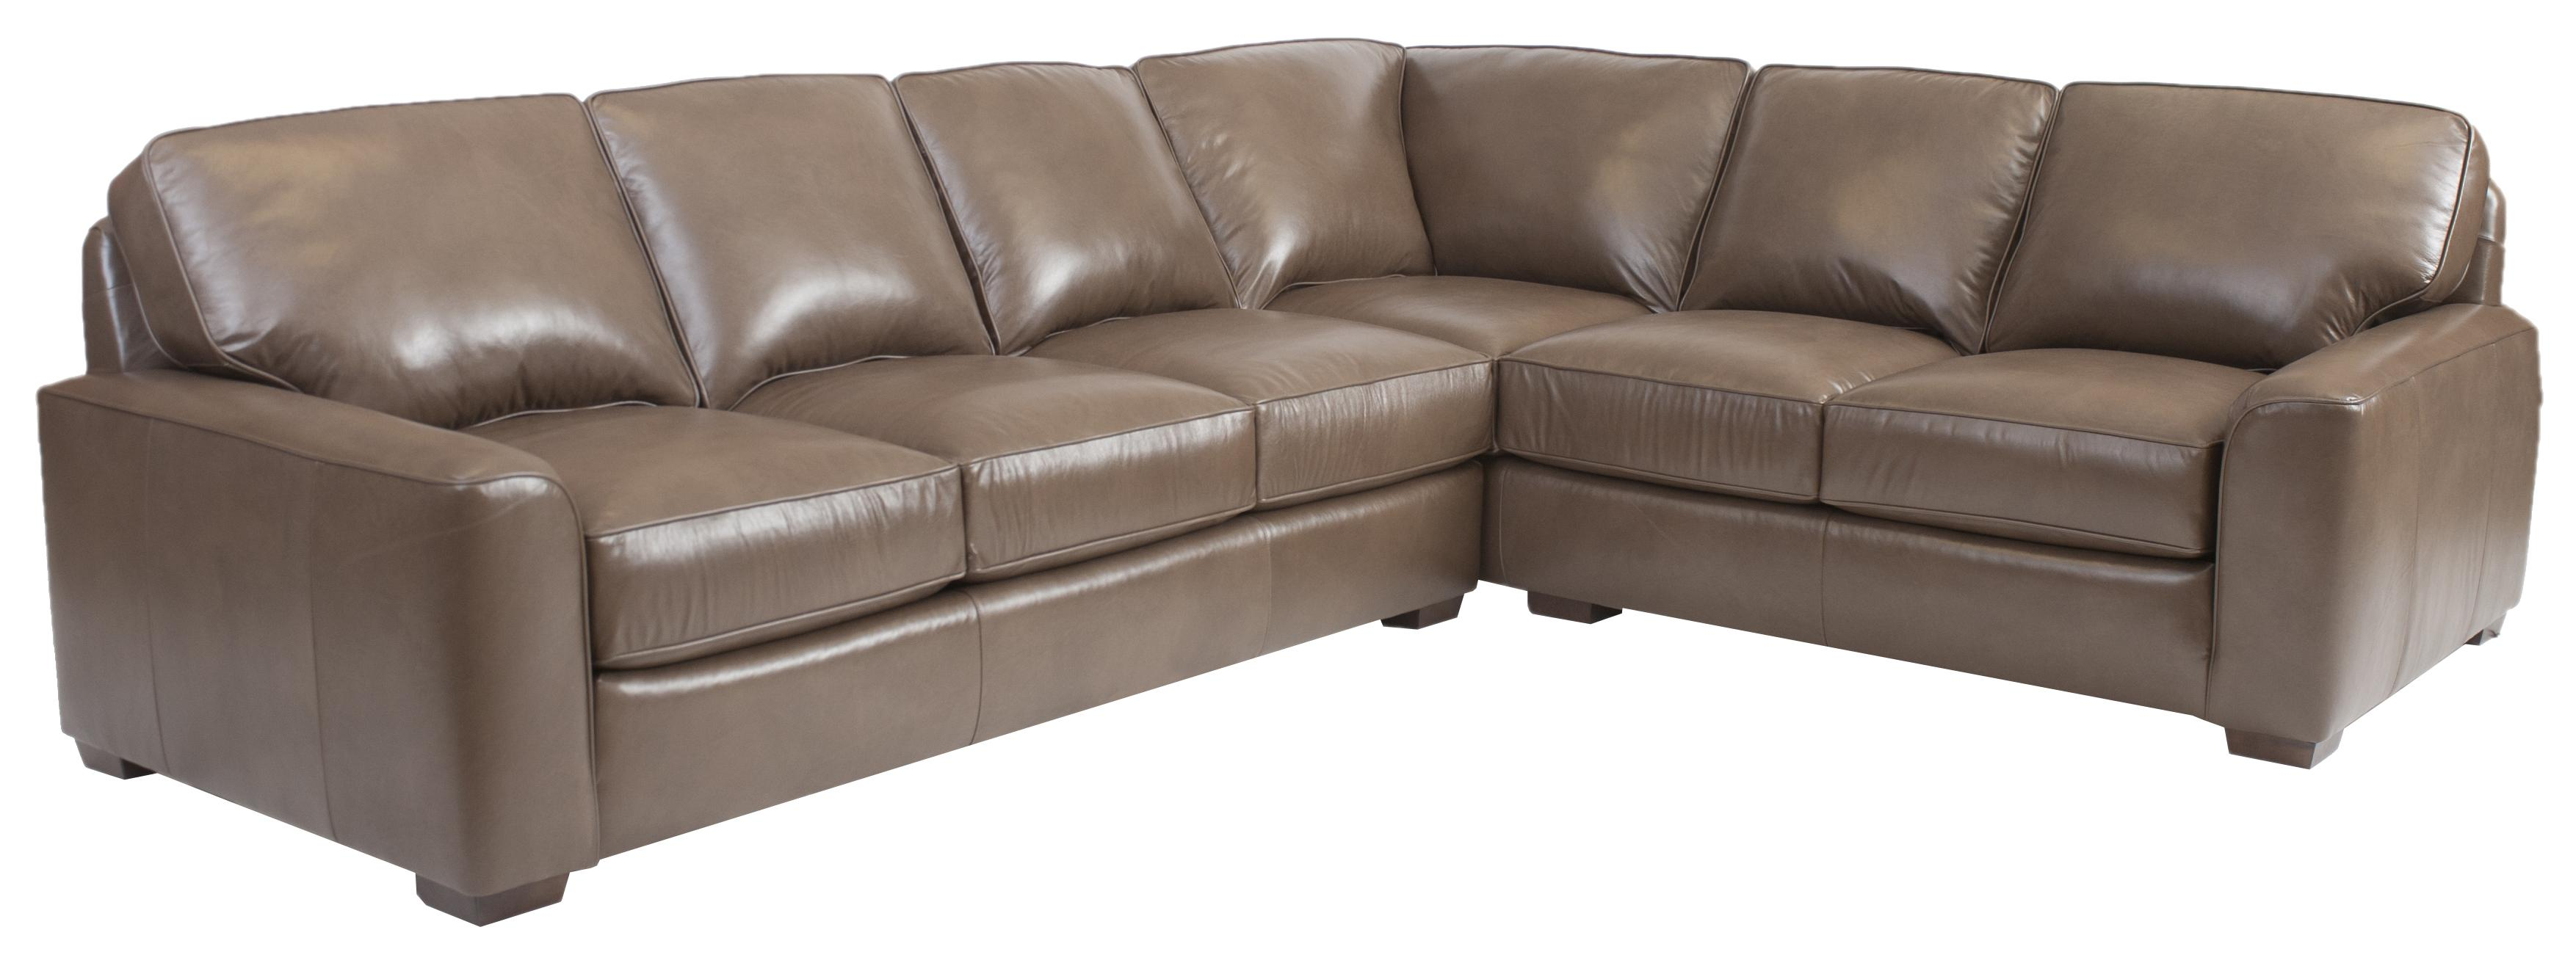 Build your own 8000 series large corner sectional sofa for Largest sectional sofa